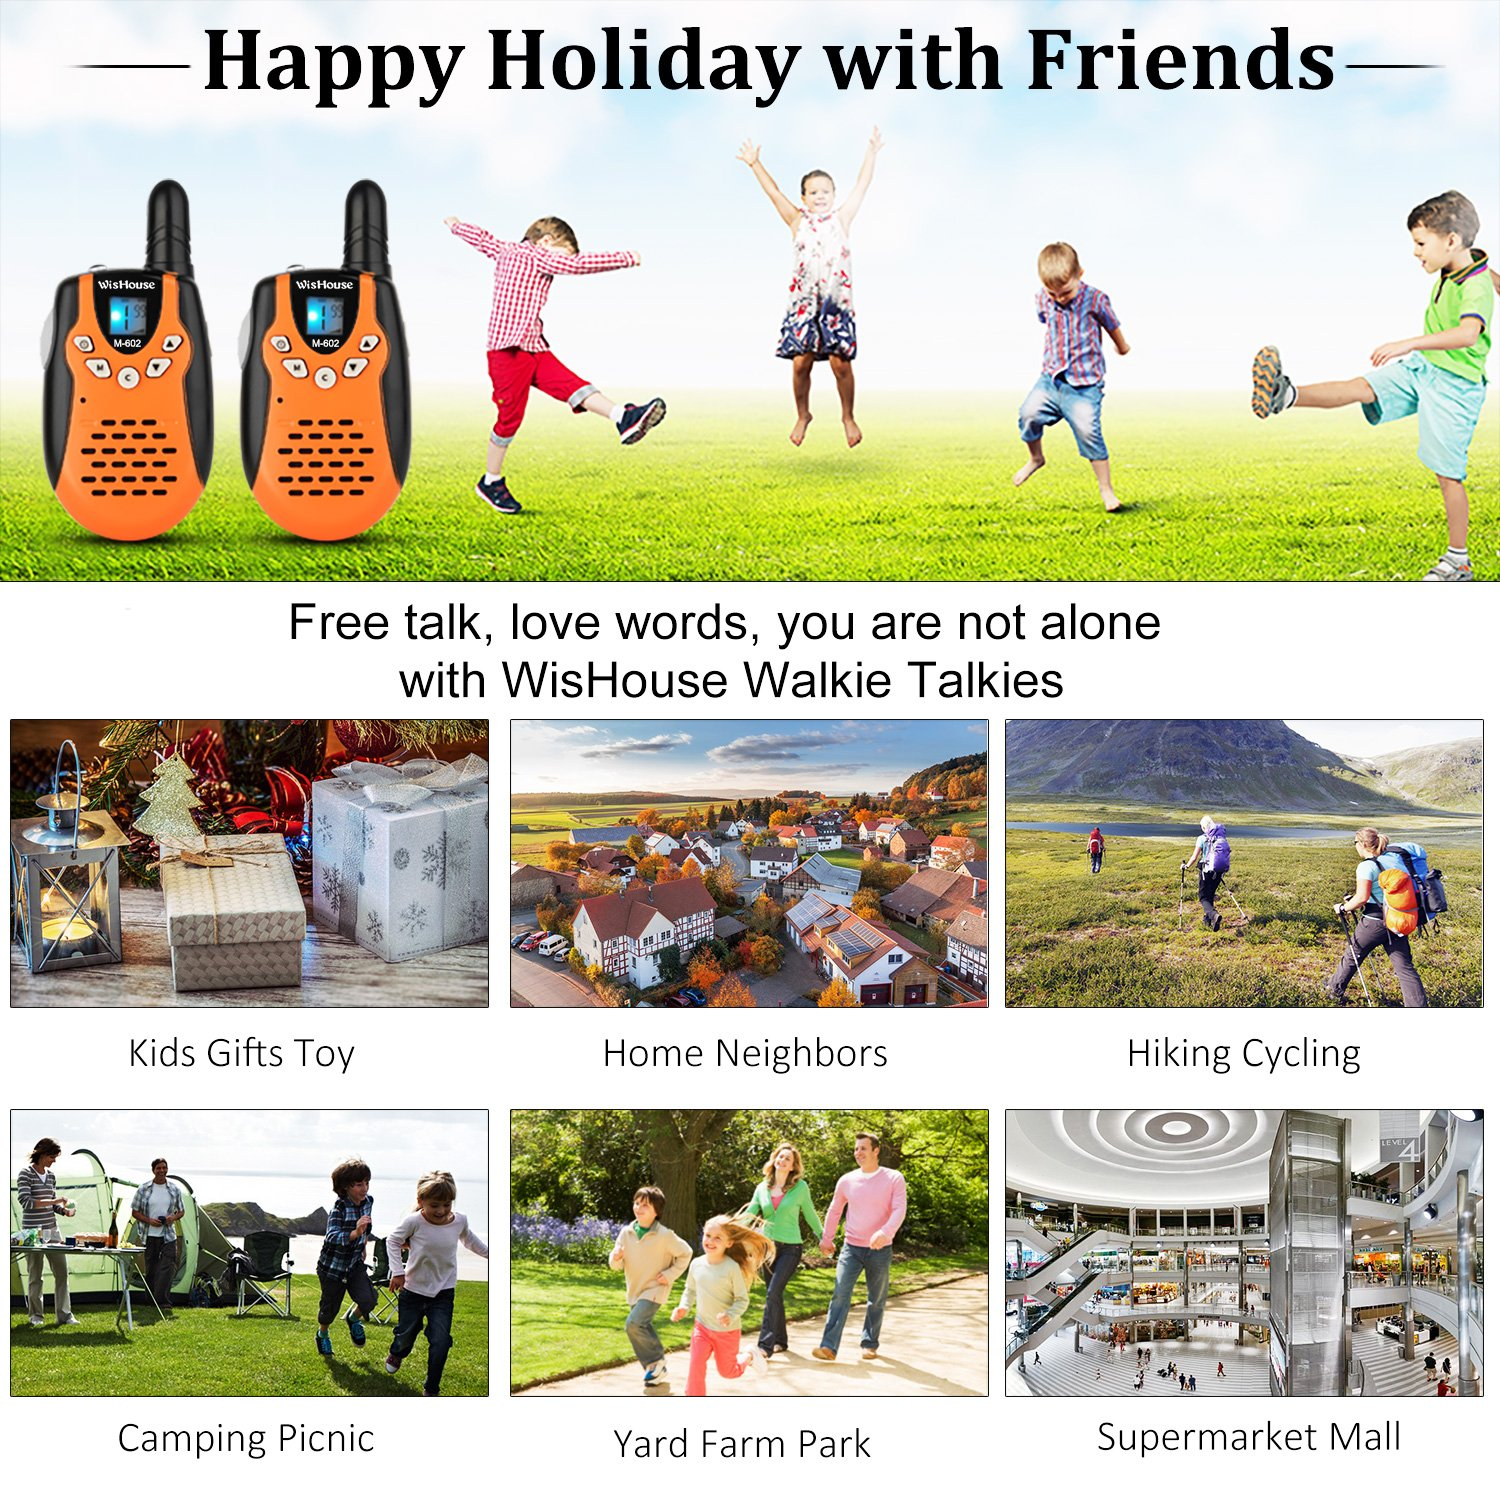 WisHouse Mini Durable Toy Walkie Talkies Kids Boys Girls Flashlight as Festival Gifts/Long Range Childrens 2 Way Radio Walky Talky Sets Camping Hiking (M602 Orange 4 Pack) by Wishouse (Image #2)